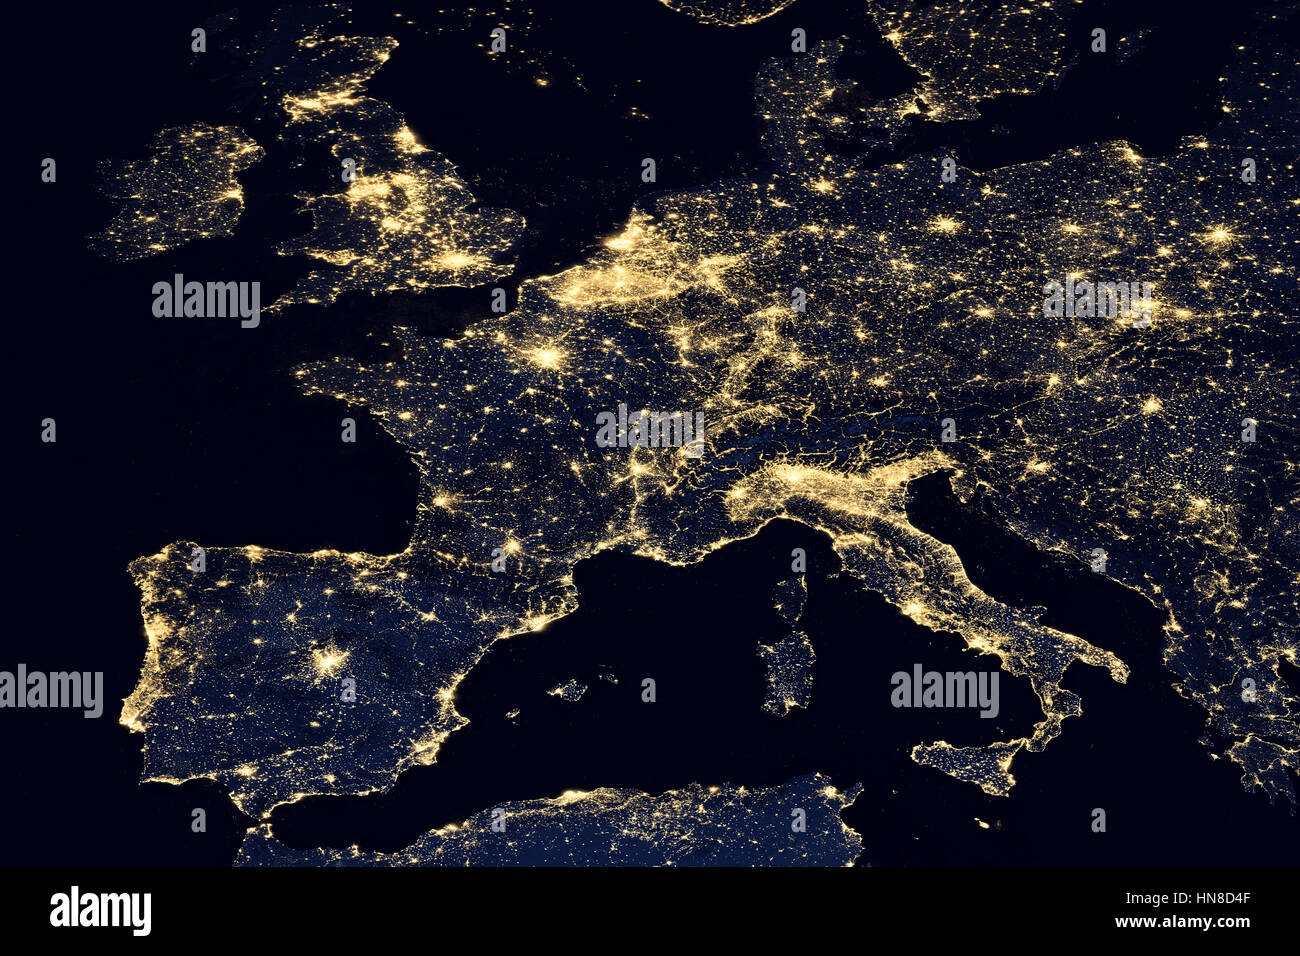 World Light Map City lights on world map. Europe Stock Photo: 133566287   Alamy